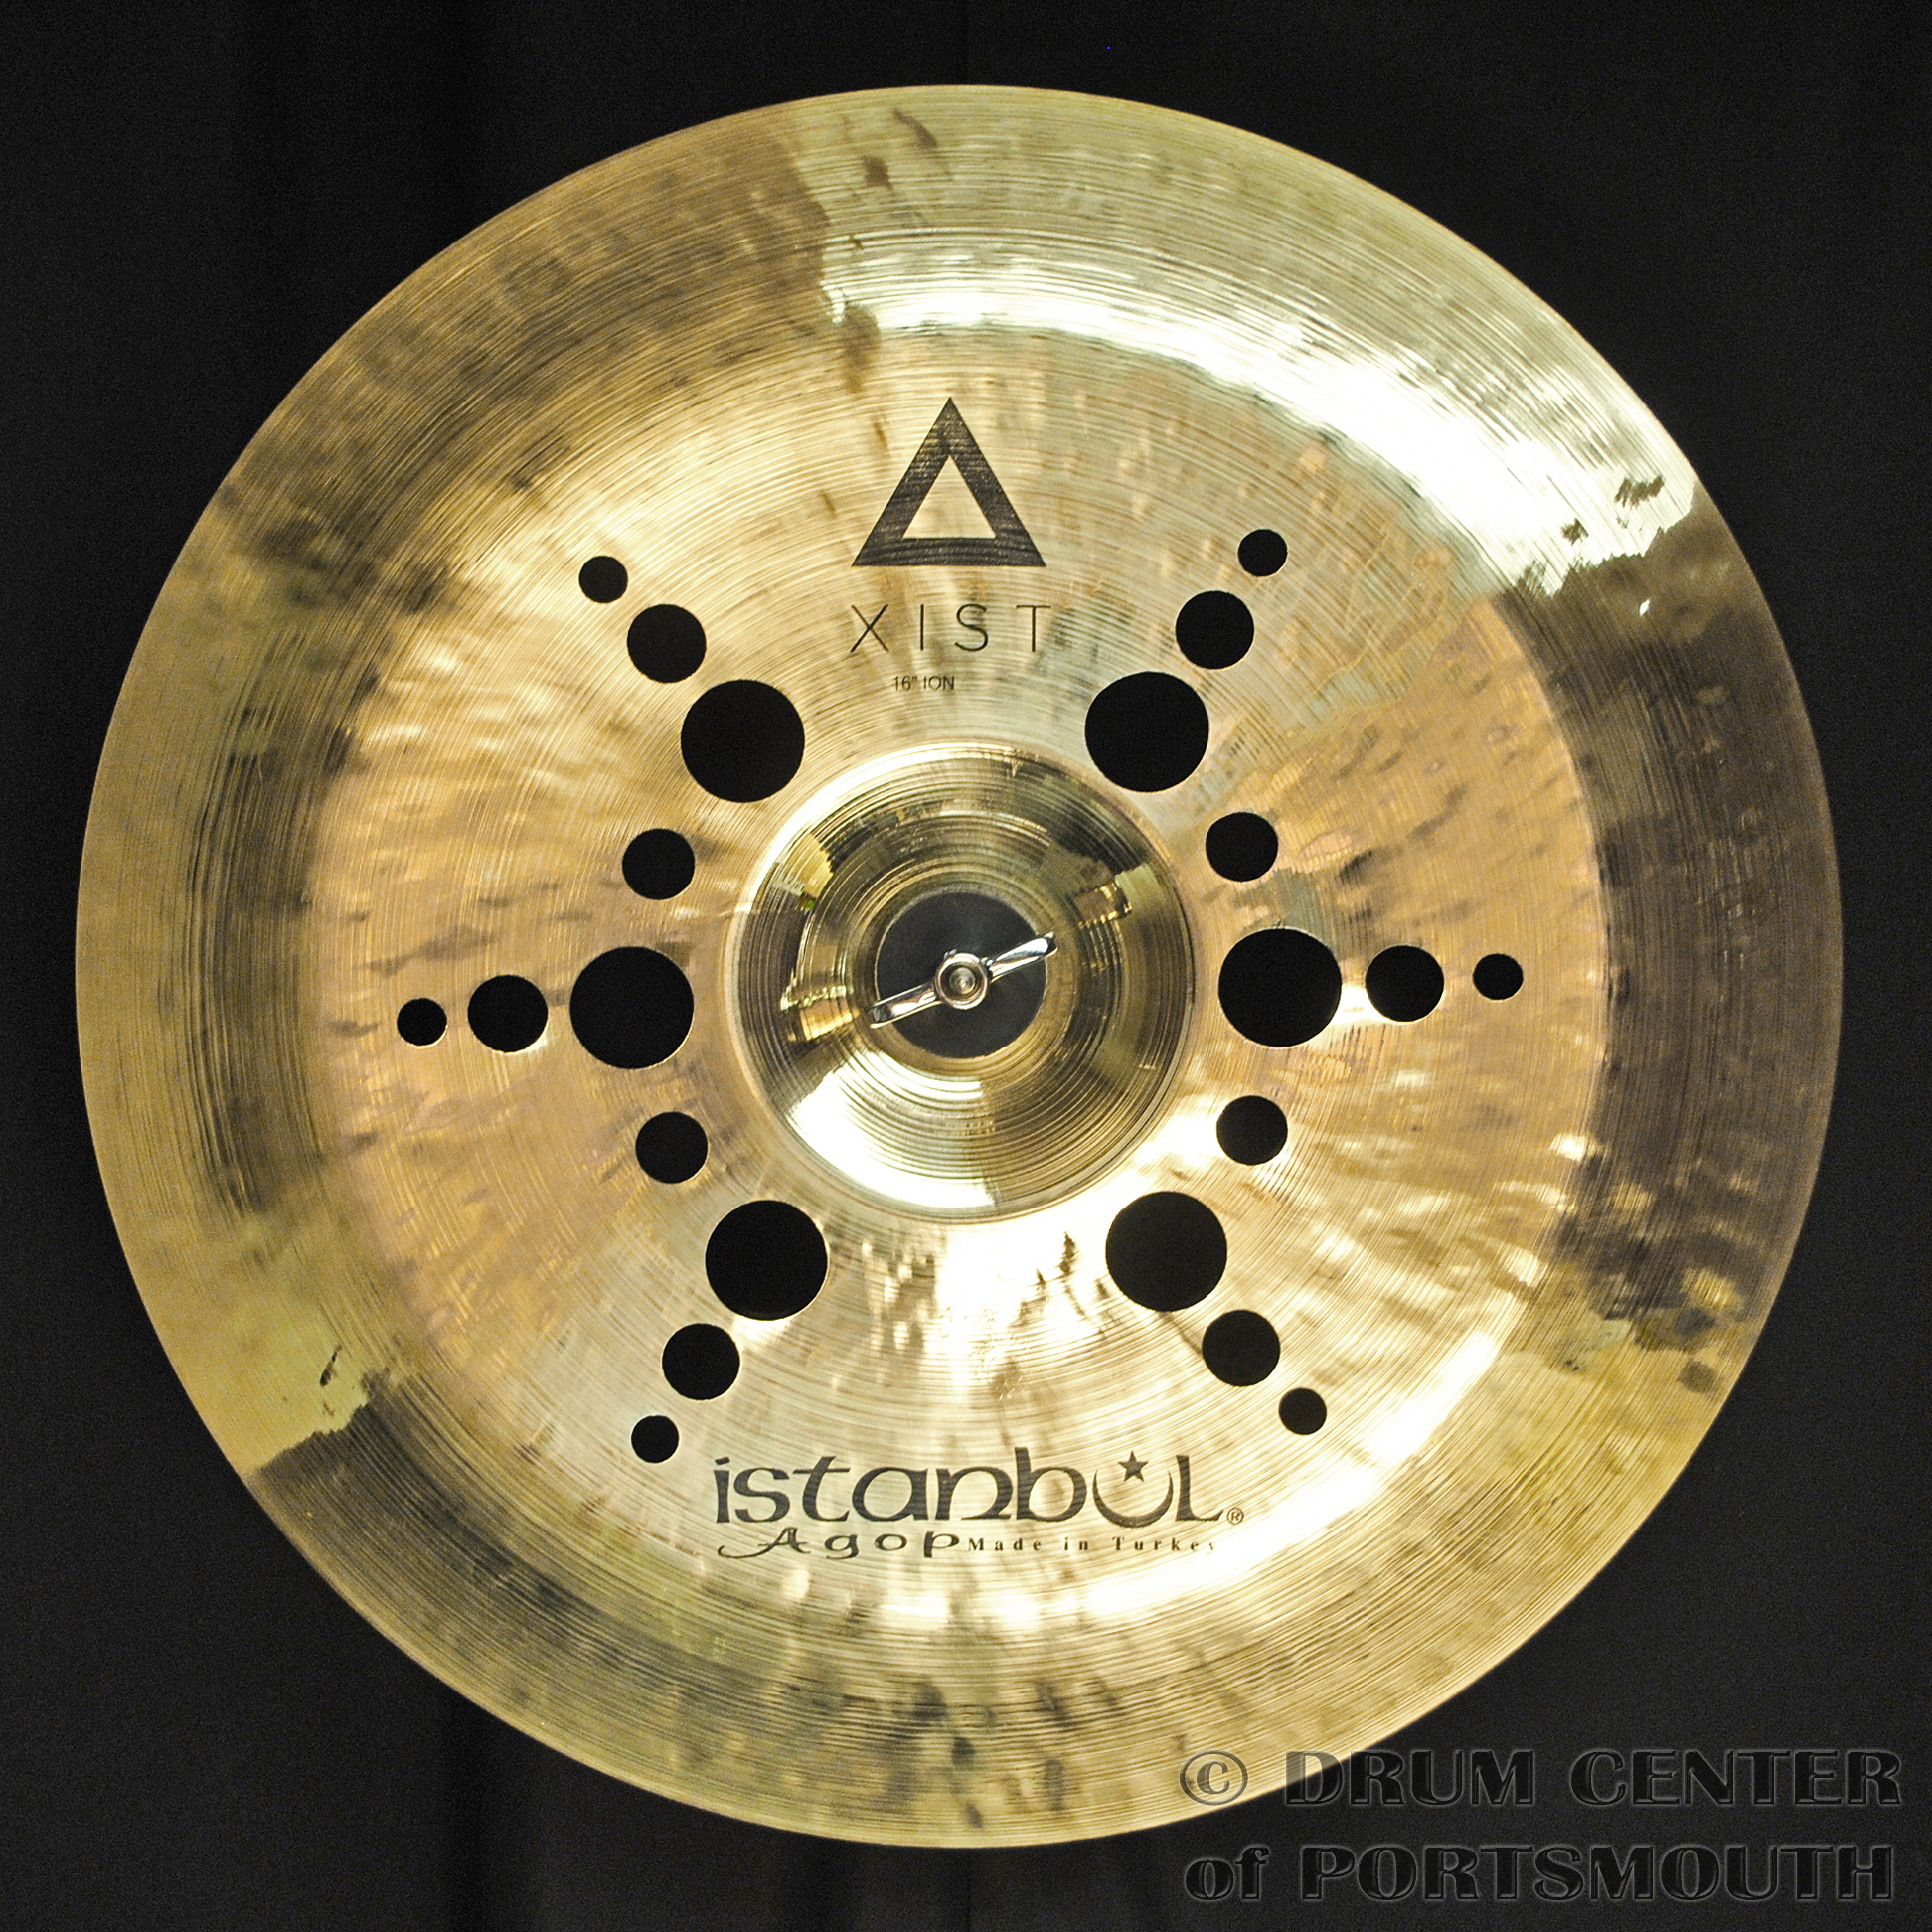 istanbul agop xist ion china cymbal 16 video demo ebay. Black Bedroom Furniture Sets. Home Design Ideas